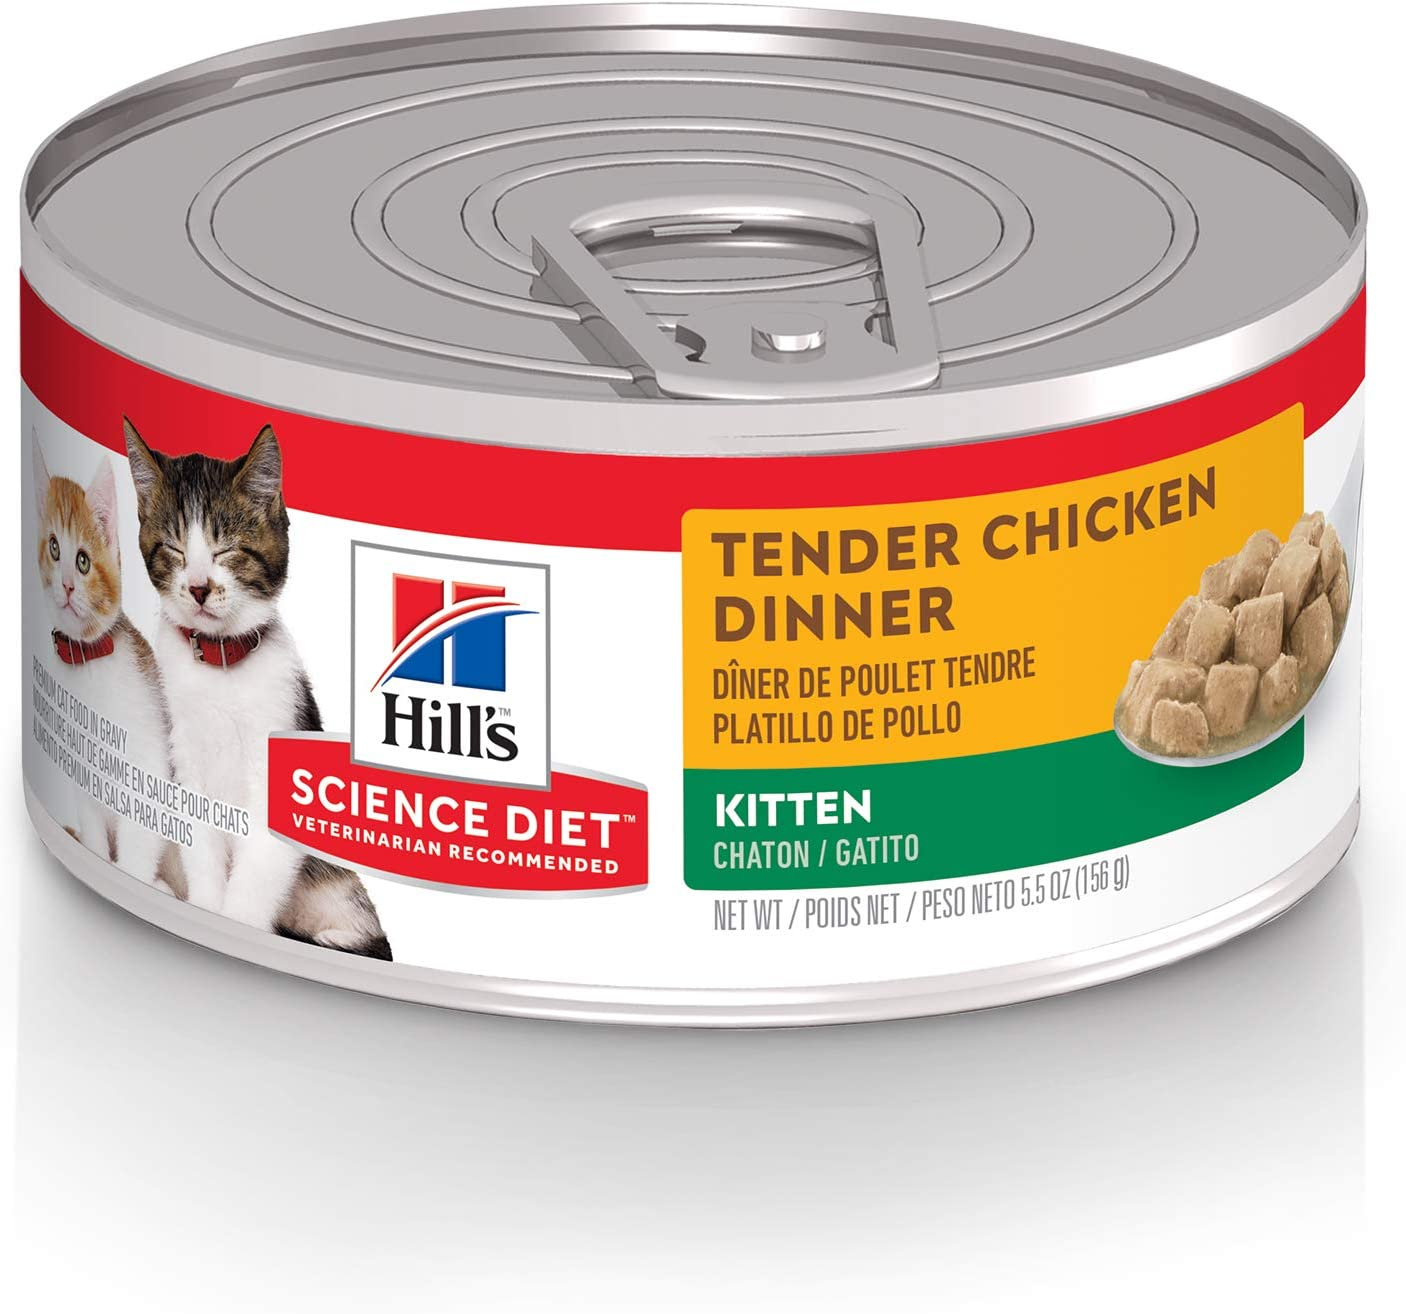 Hill's Science Diet Wet Cat Food, Kitten, Tender Chicken Dinner, 5.5 oz, 24-pack